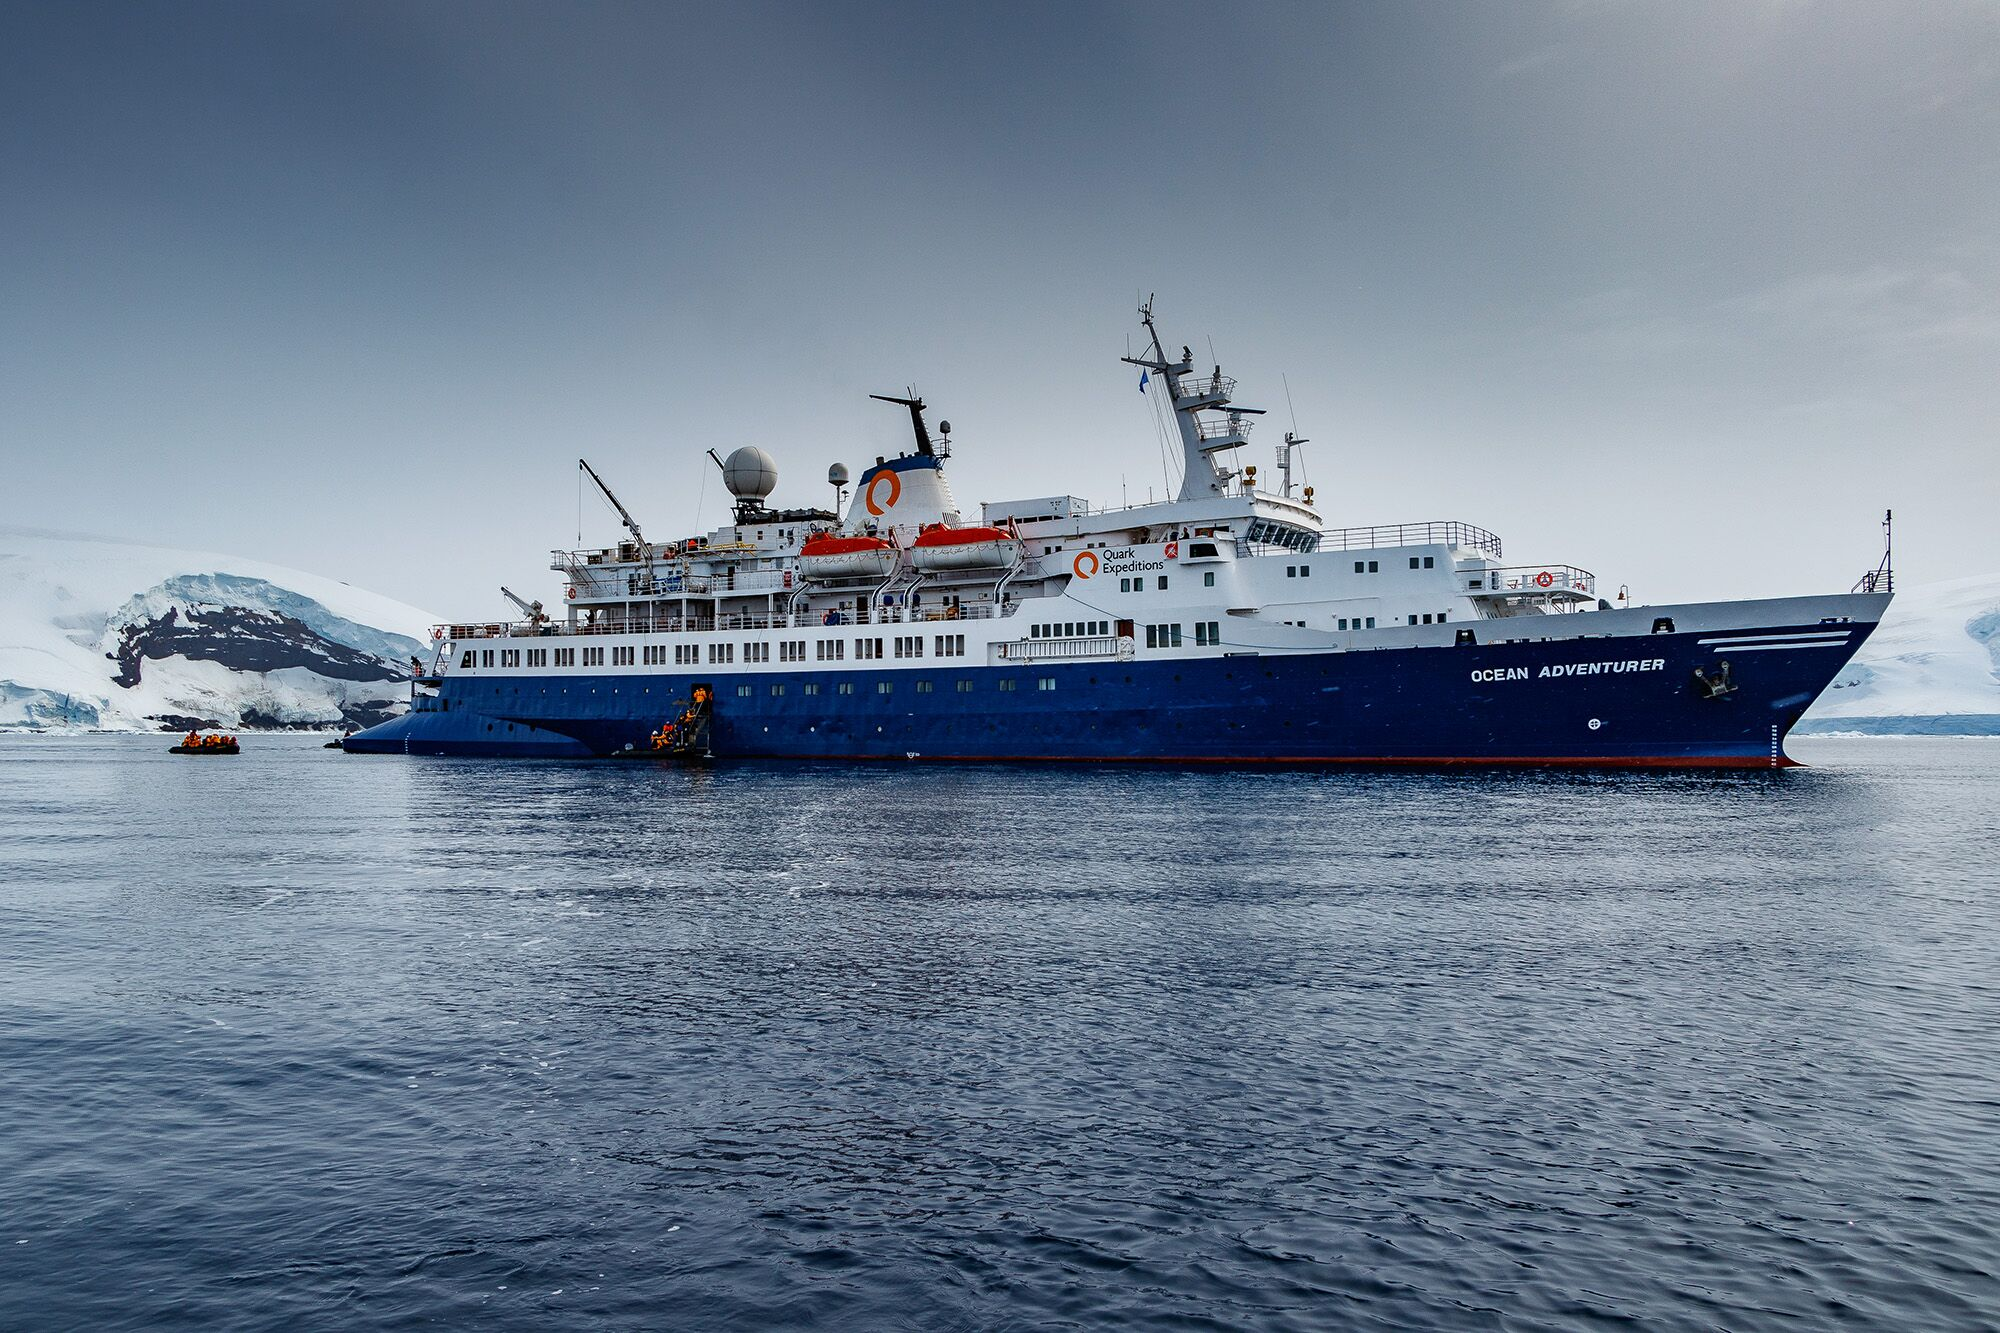 Ocean Adventurer, the ship servicing Wild & Ancient Britain with Ireland